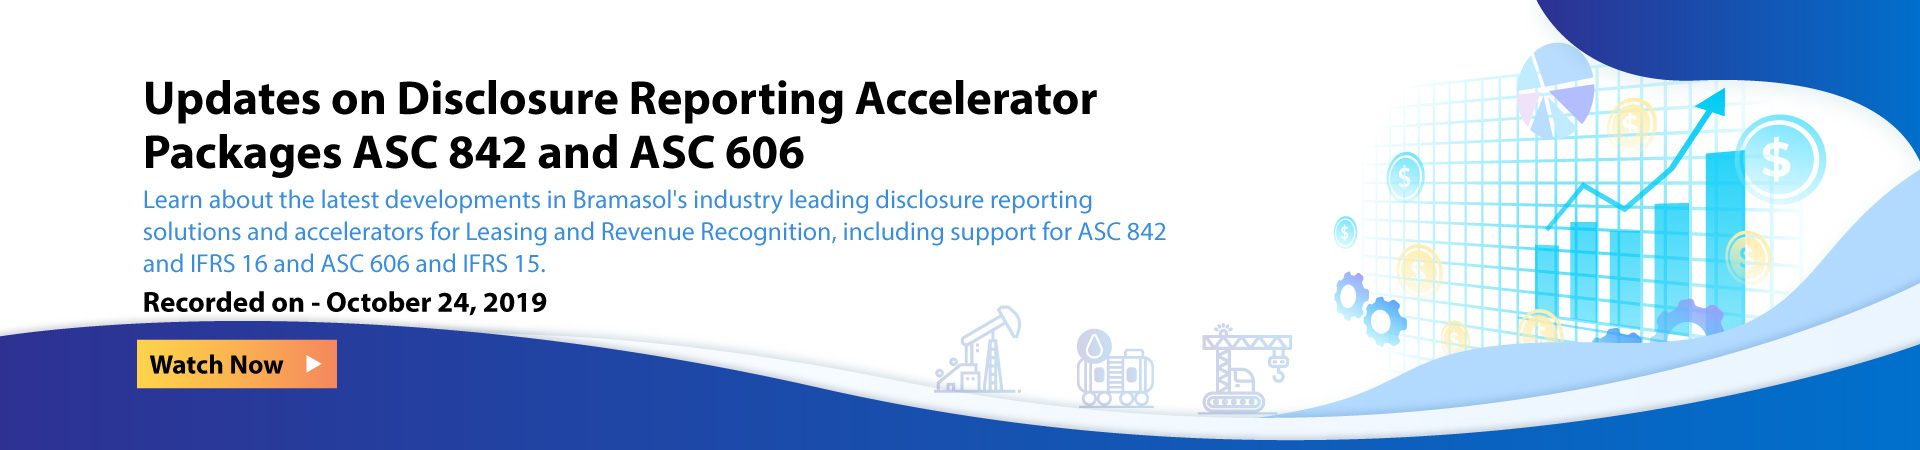 Disclosure Reporting Accelerator Packages for ASC 842 and ASC 606